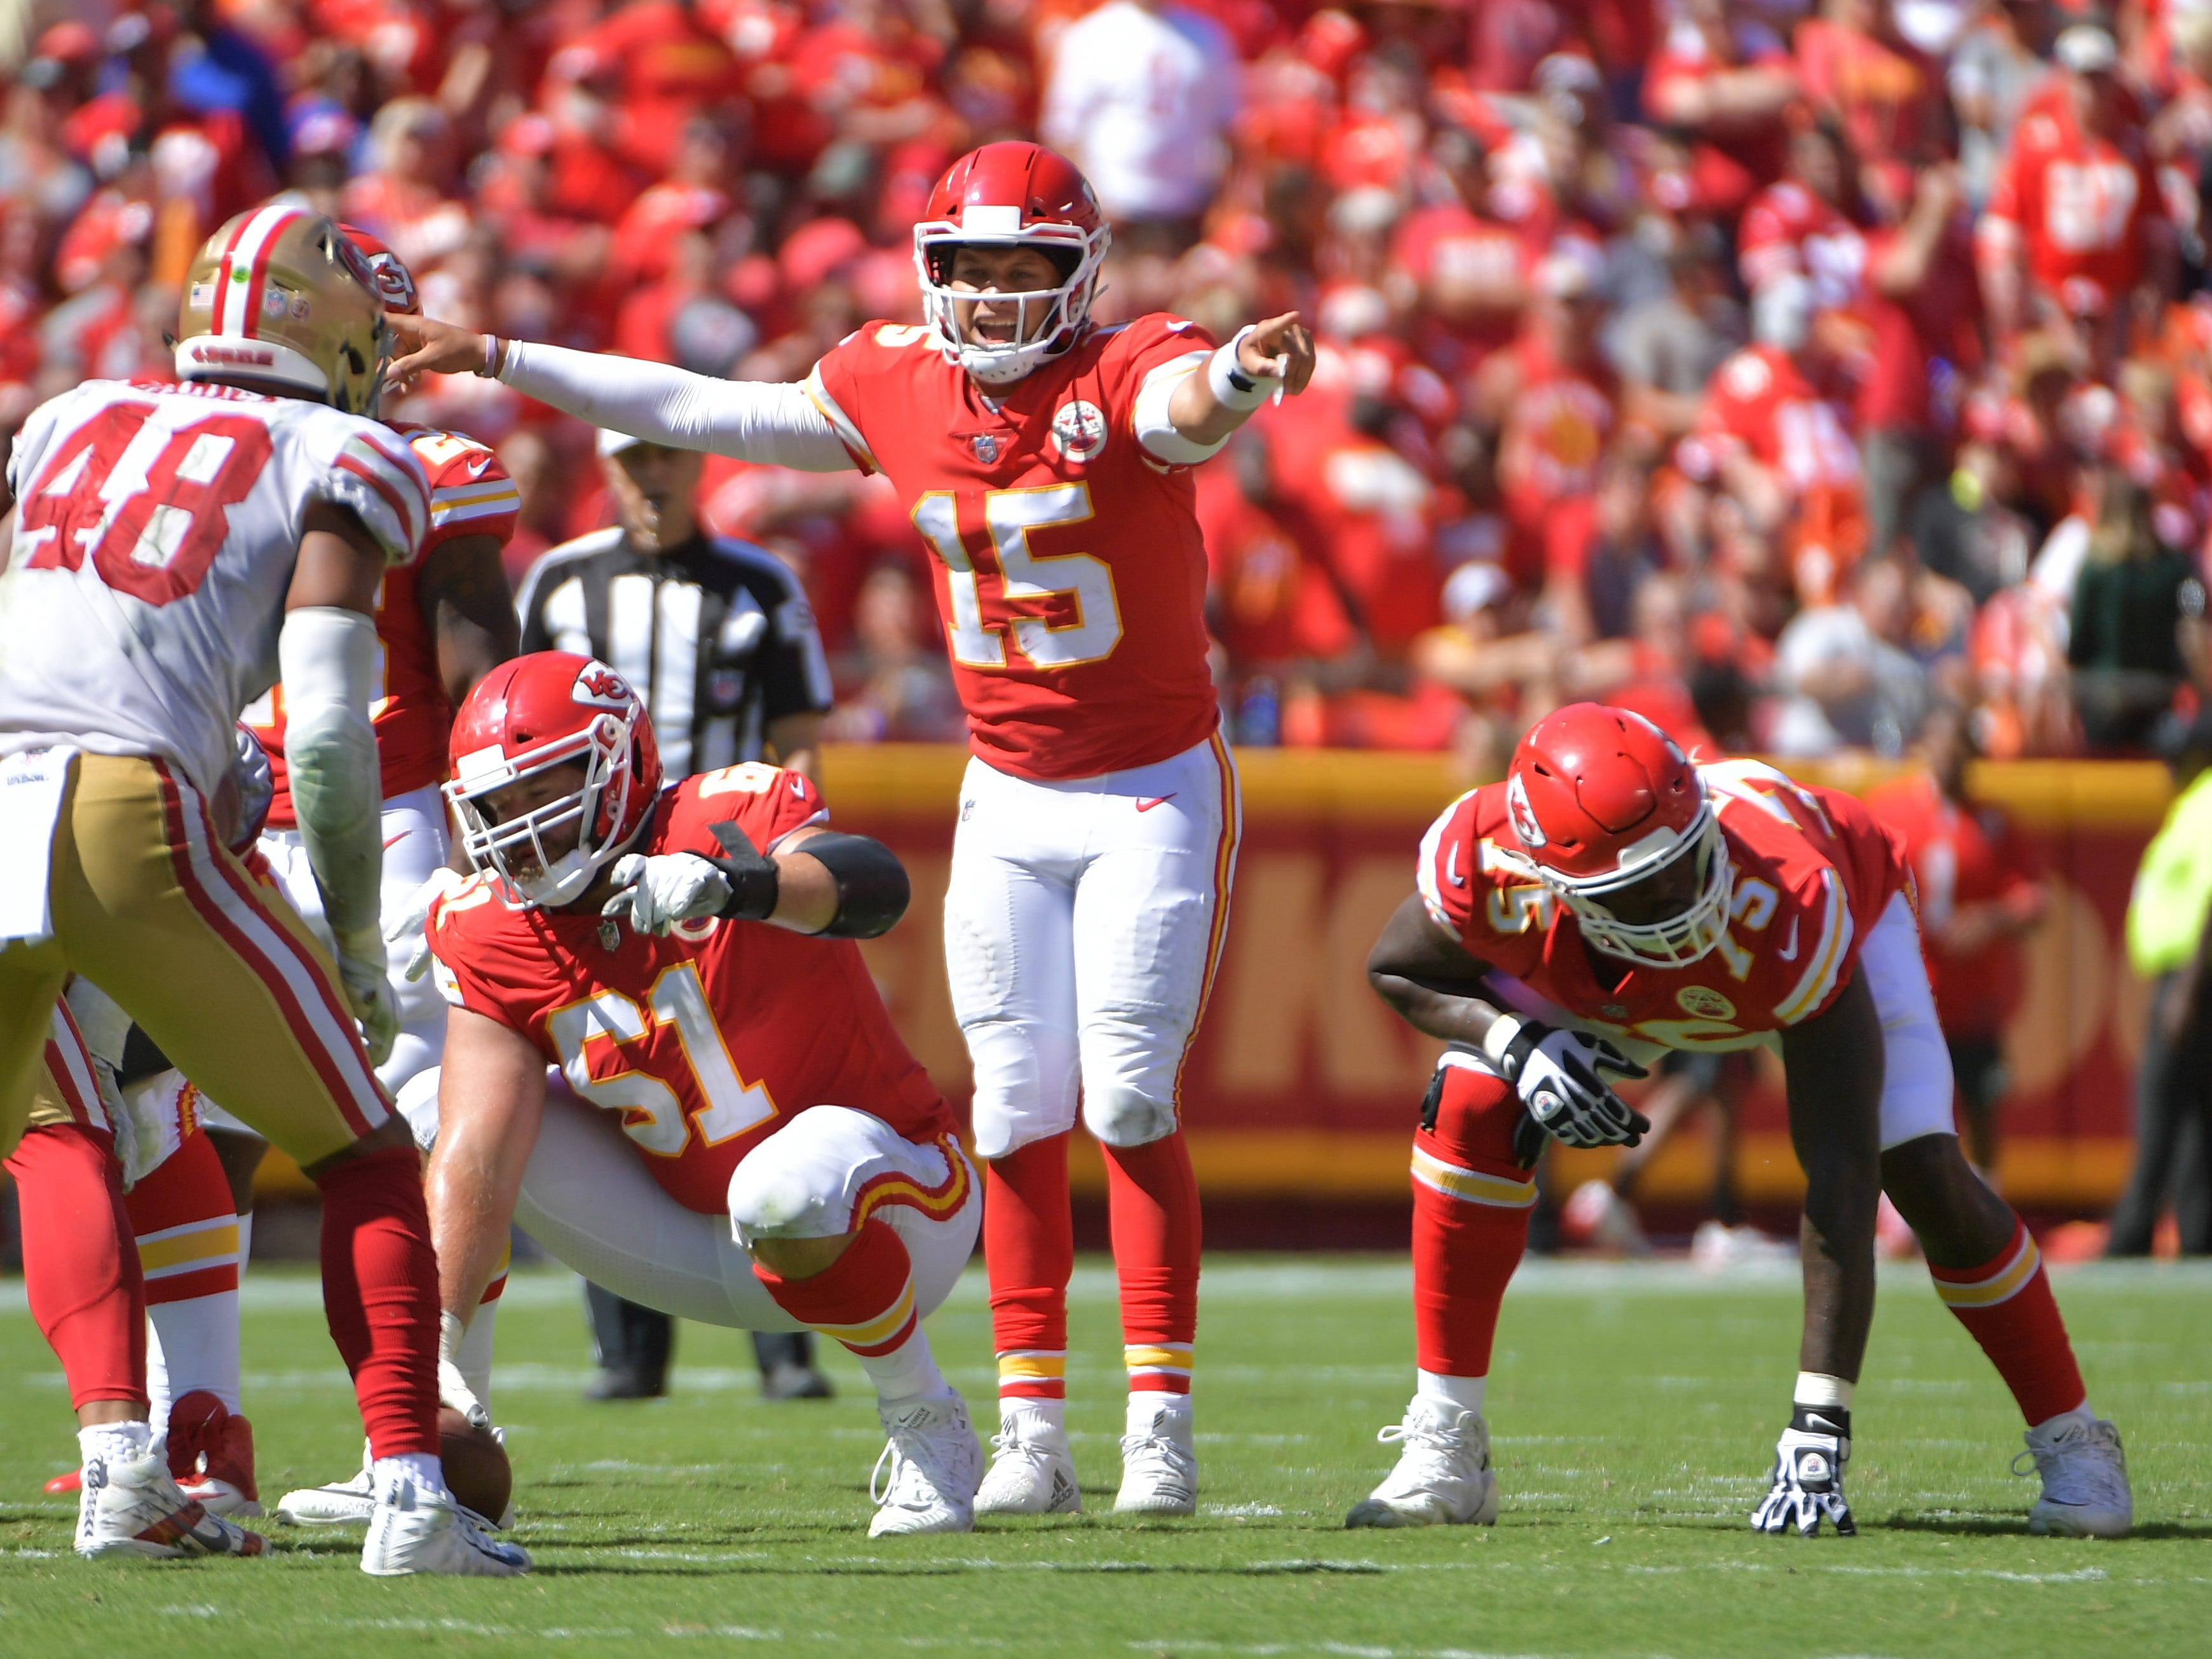 2. Chiefs (3): Patrick Mahomes on pace for record 69 TD passes ... and defense on pace to allow 7,584 yards – over 500 more than any other in history.